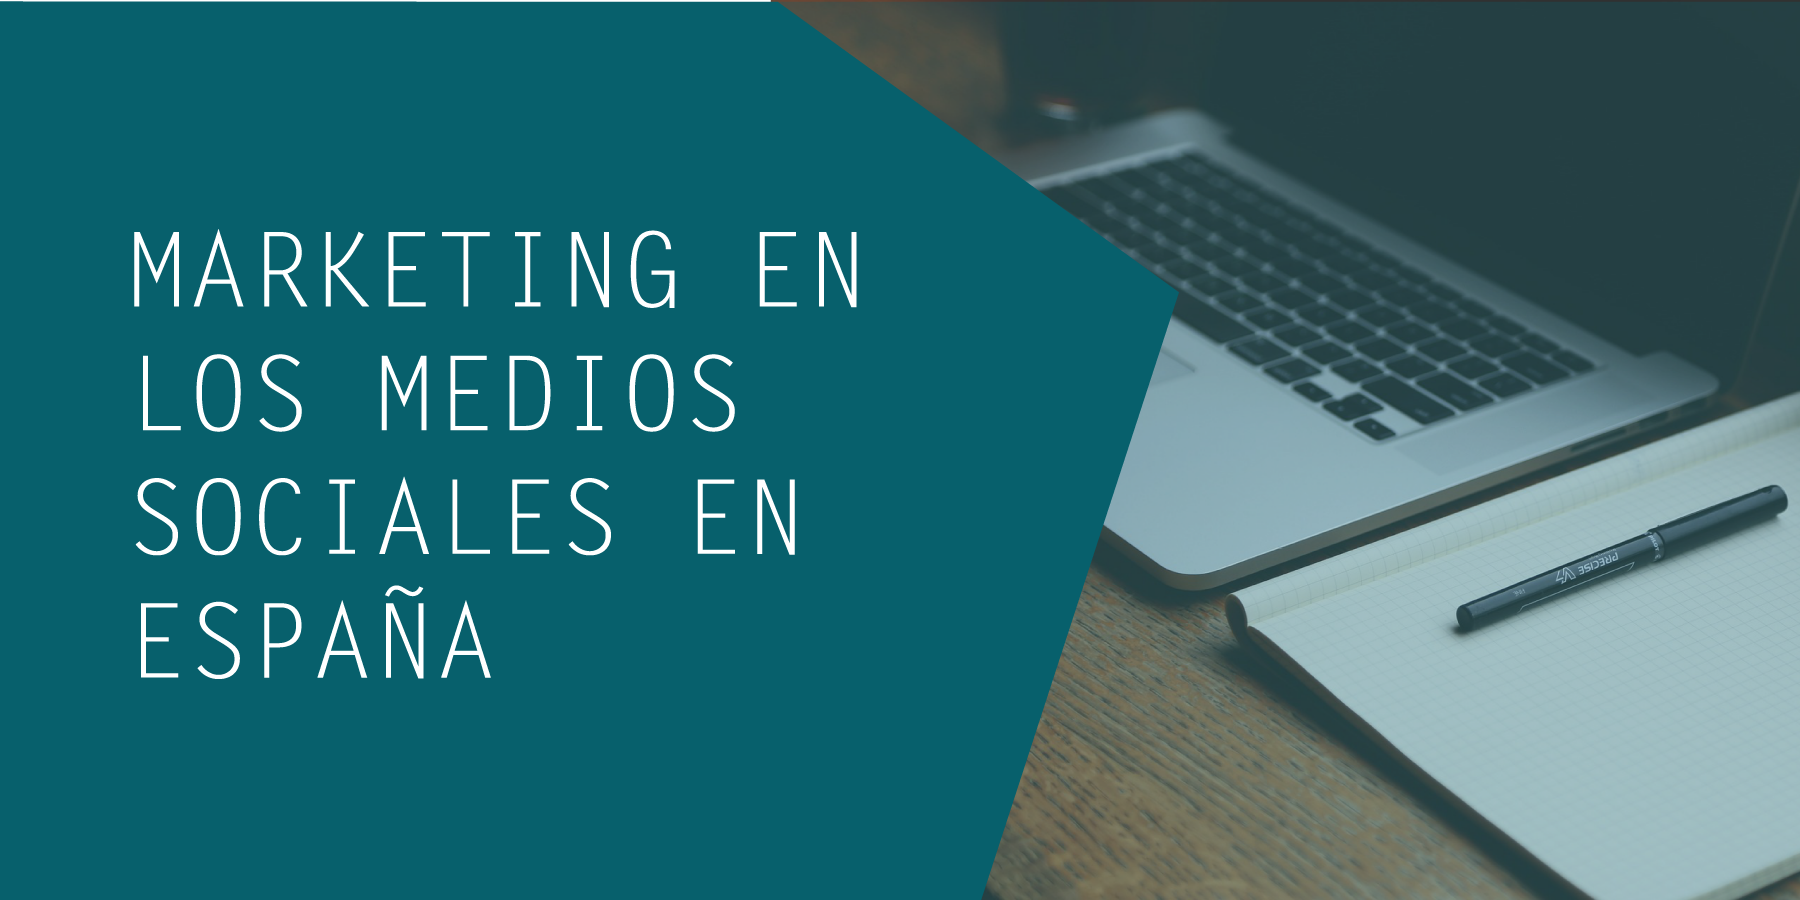 Estudio Marketing en Medios Sociales en España